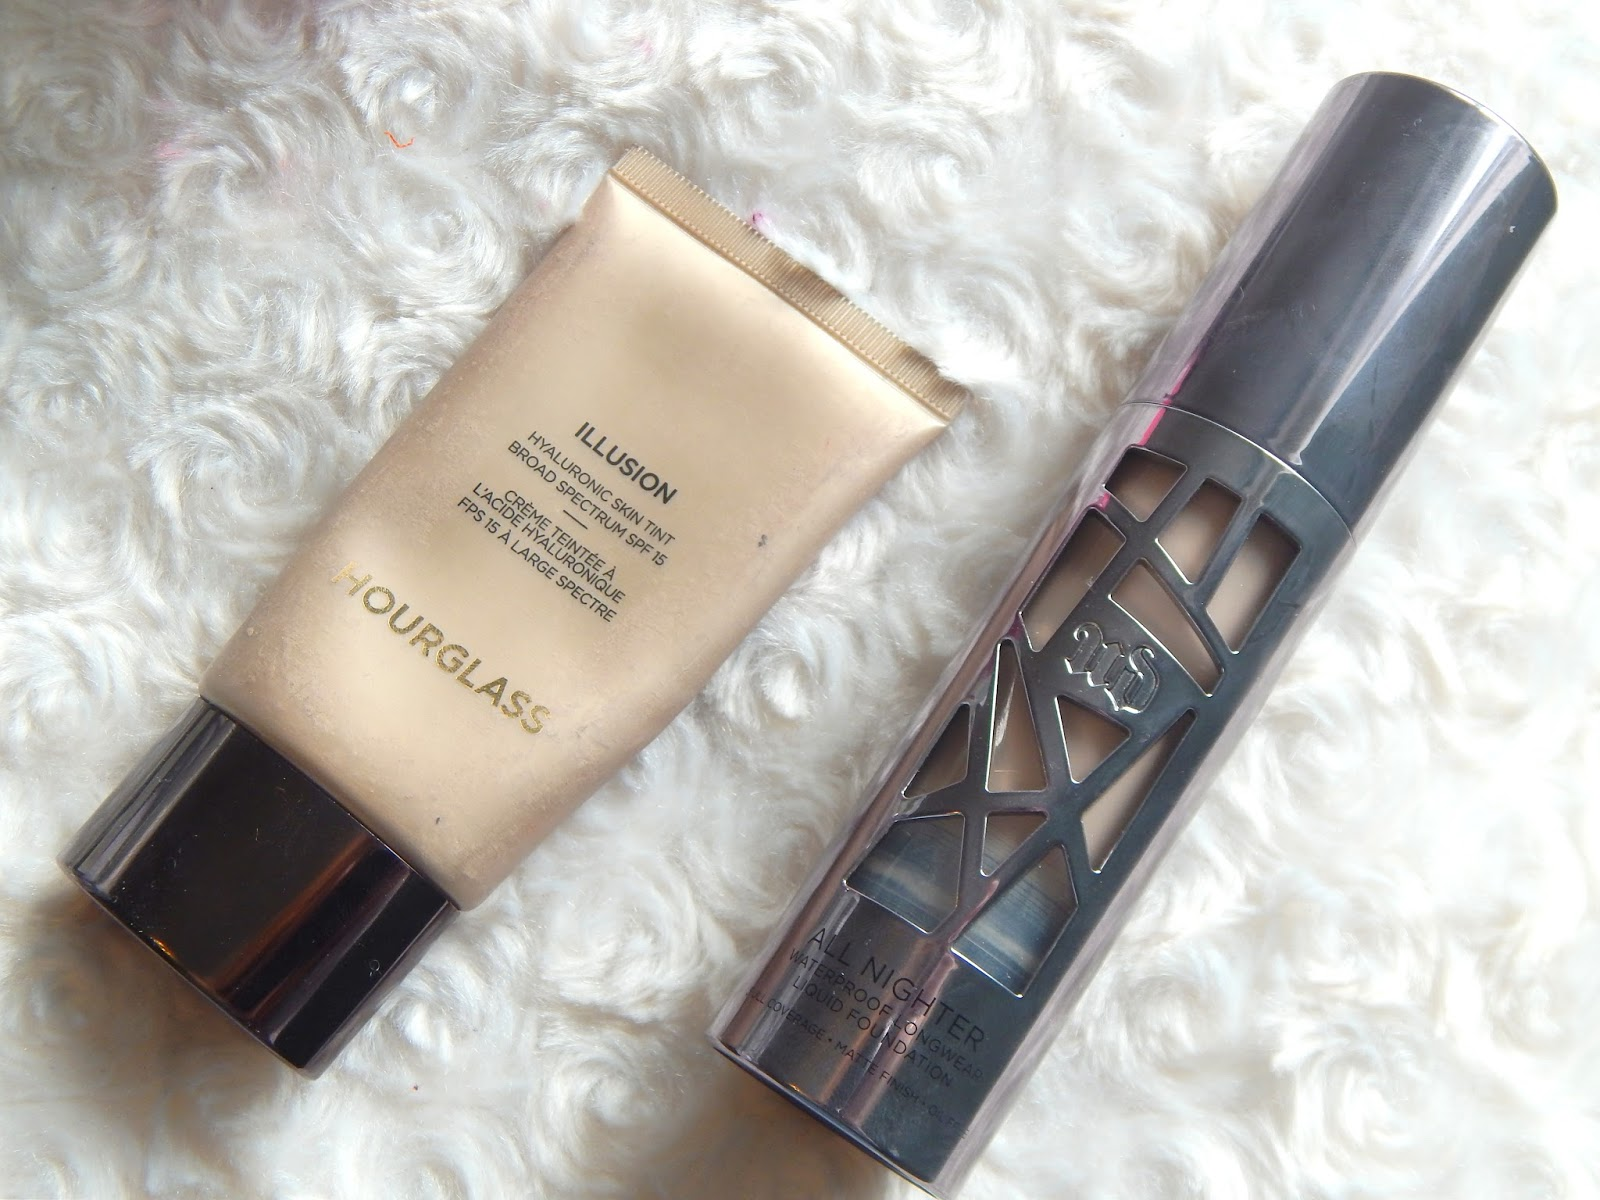 Hourglass Illusion and Urban Decay All Nighter Foundation